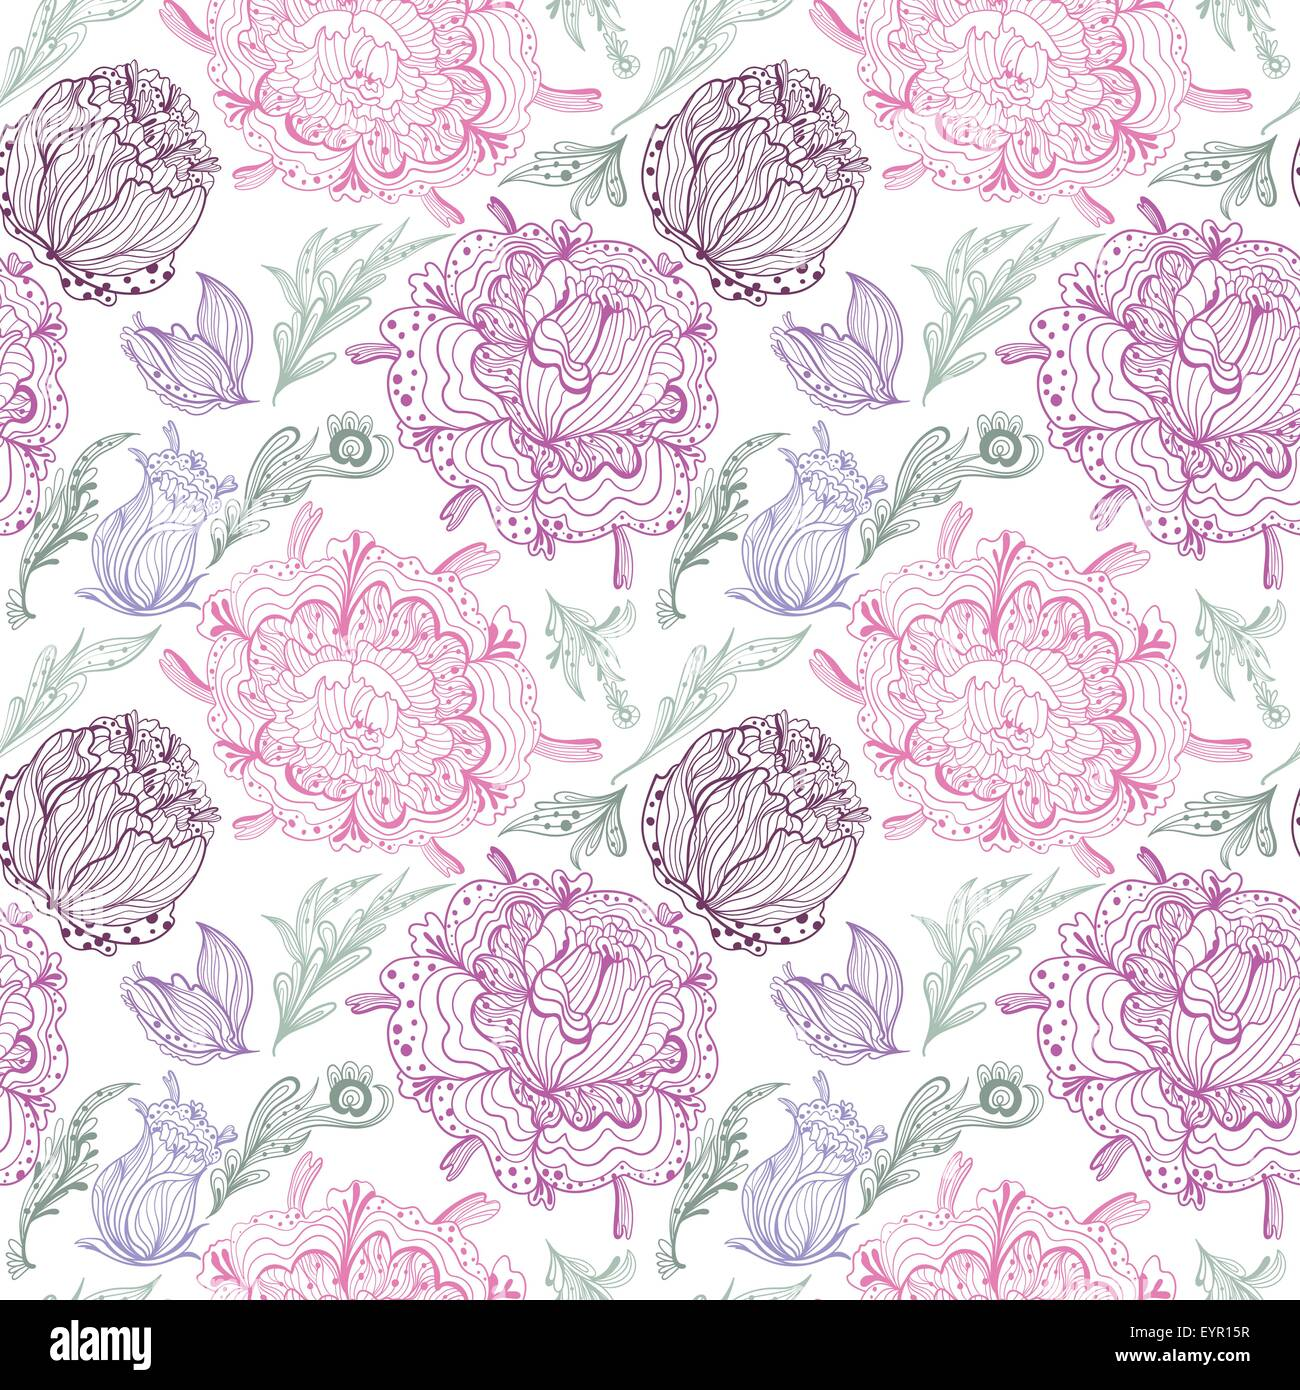 Pink floral seamless vector background floral hrysanthemum seamless - Seamless Floral Illustration With Tender Chrysanthemum Flowers And Leaves On White Background